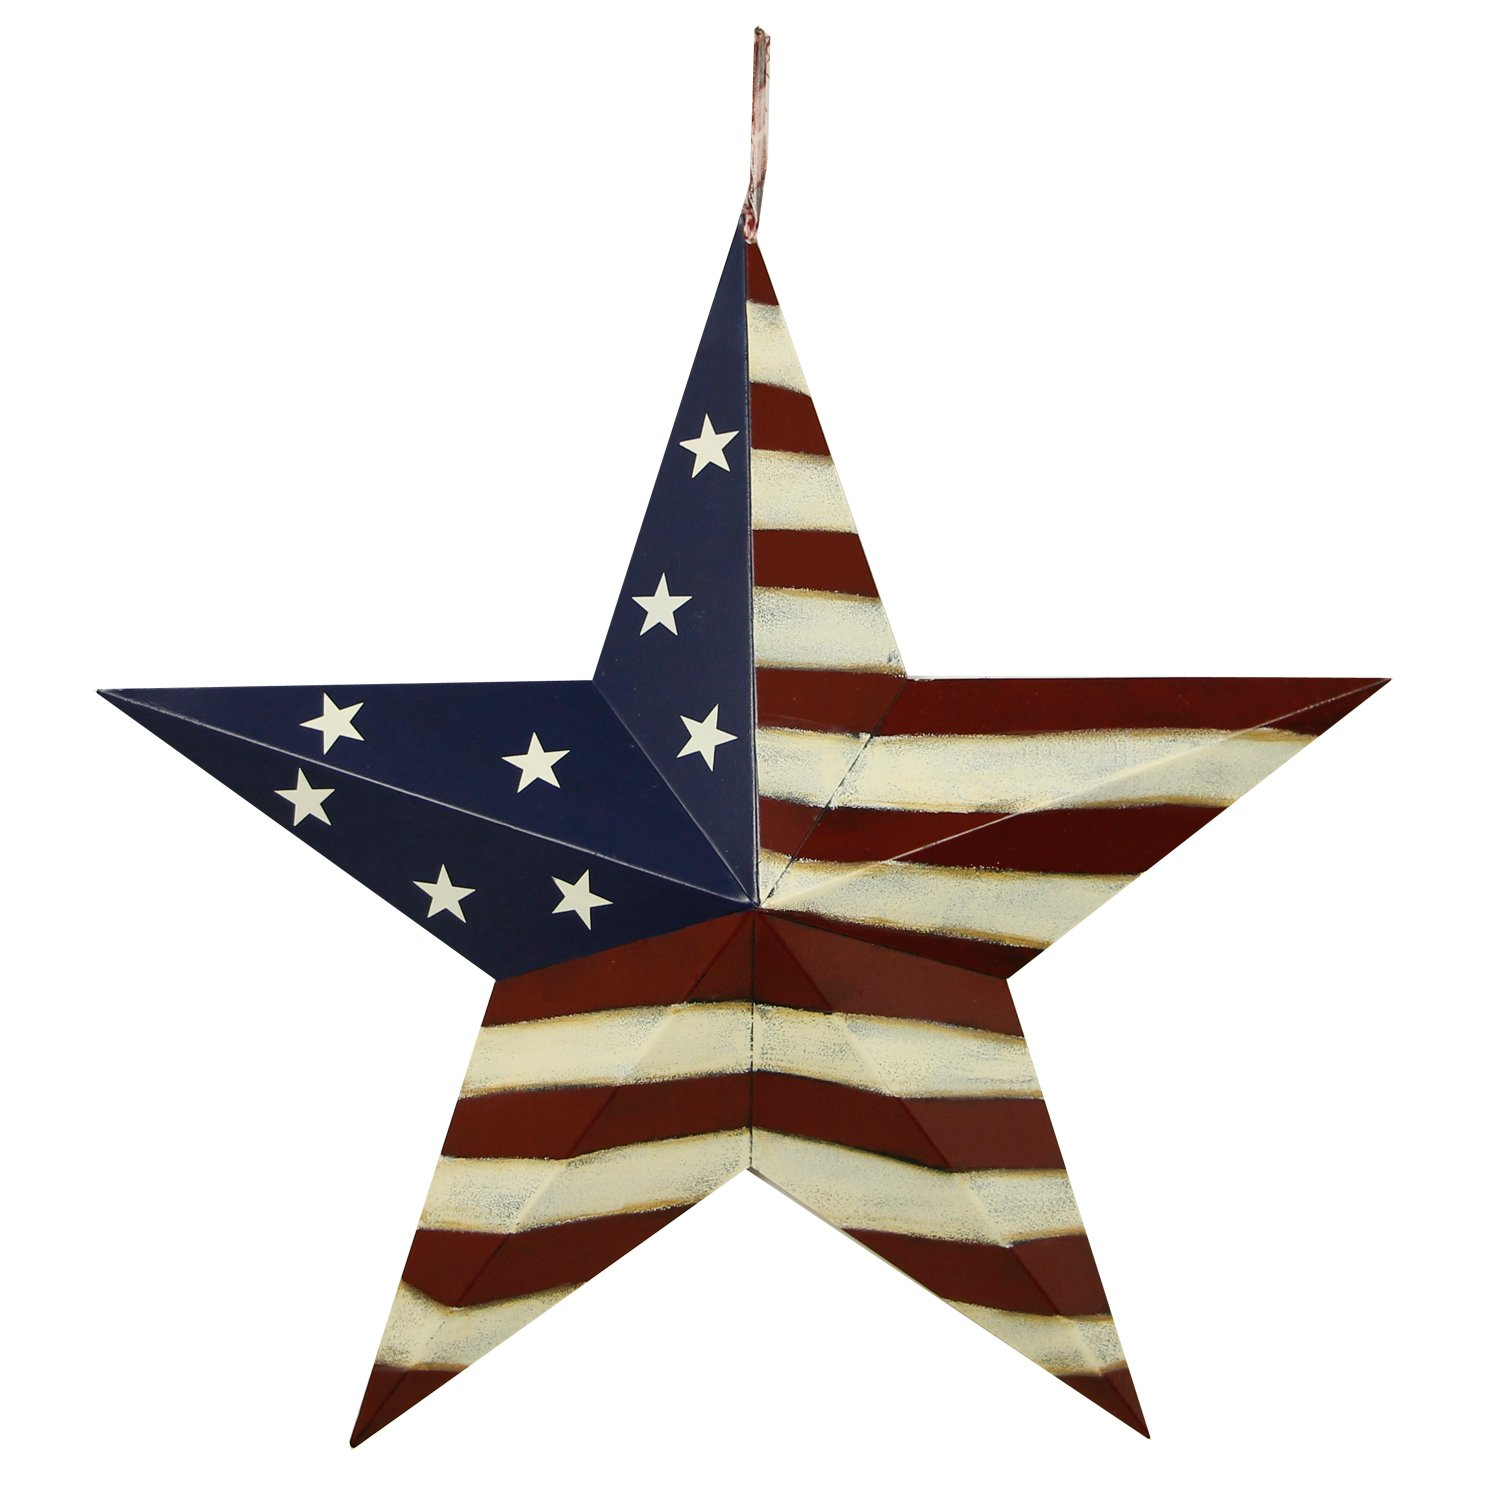 YK Decor Patriotic Old Glory American Flag Barn Star 4th of July Rustic Metal Dimensional 3D Star Wall Decor, (22'')